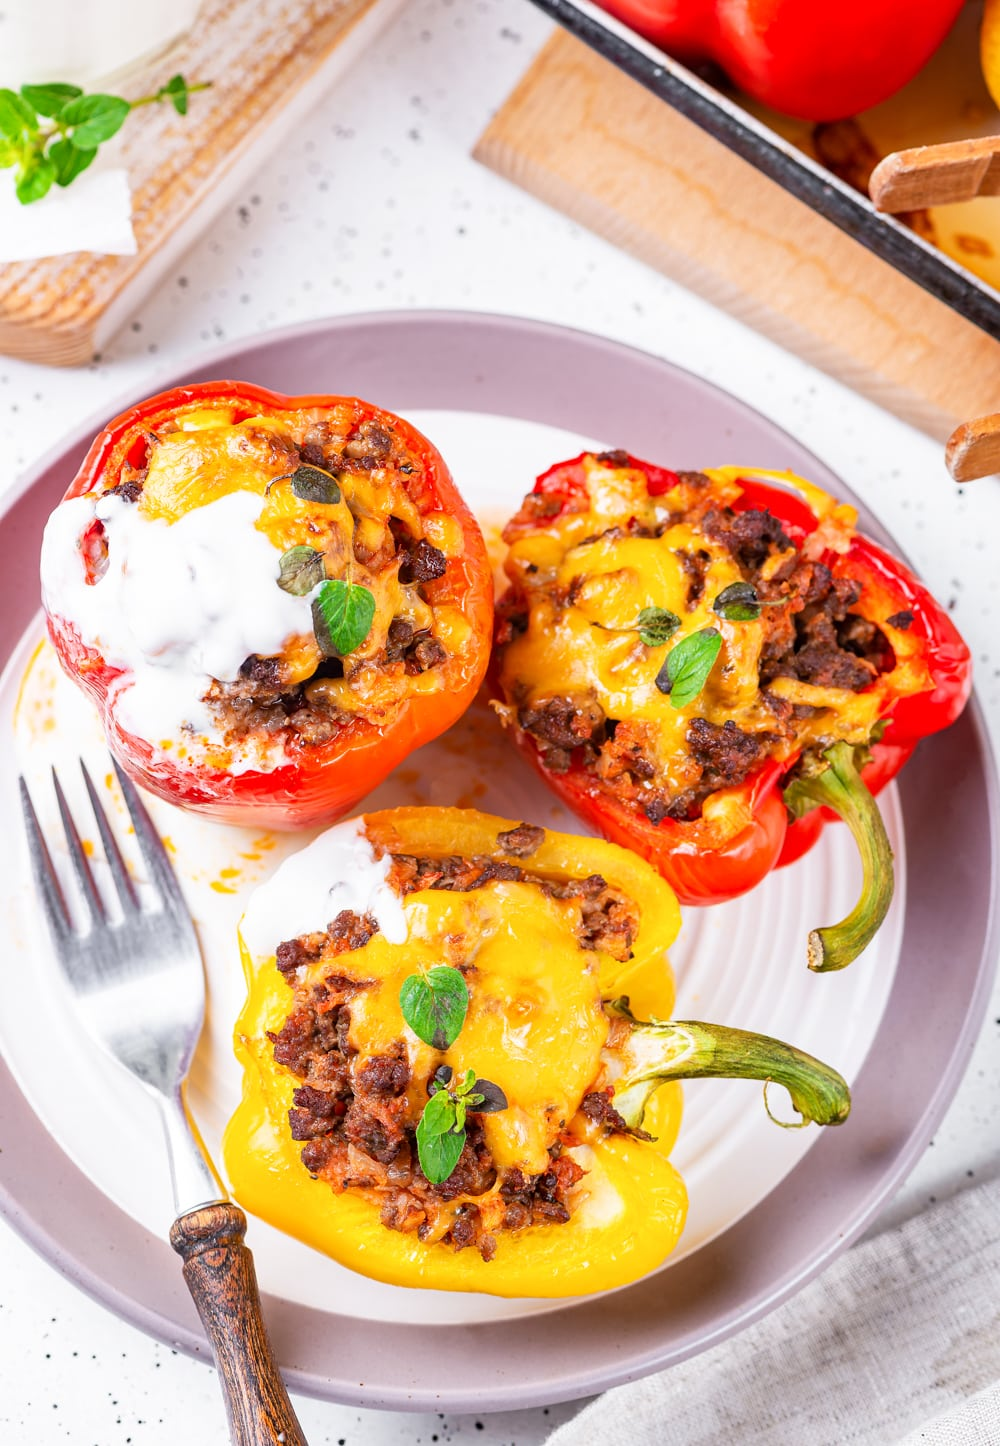 2 Red stuffed bell peppers and 1 yellow stuffed bell pepper on a plate.